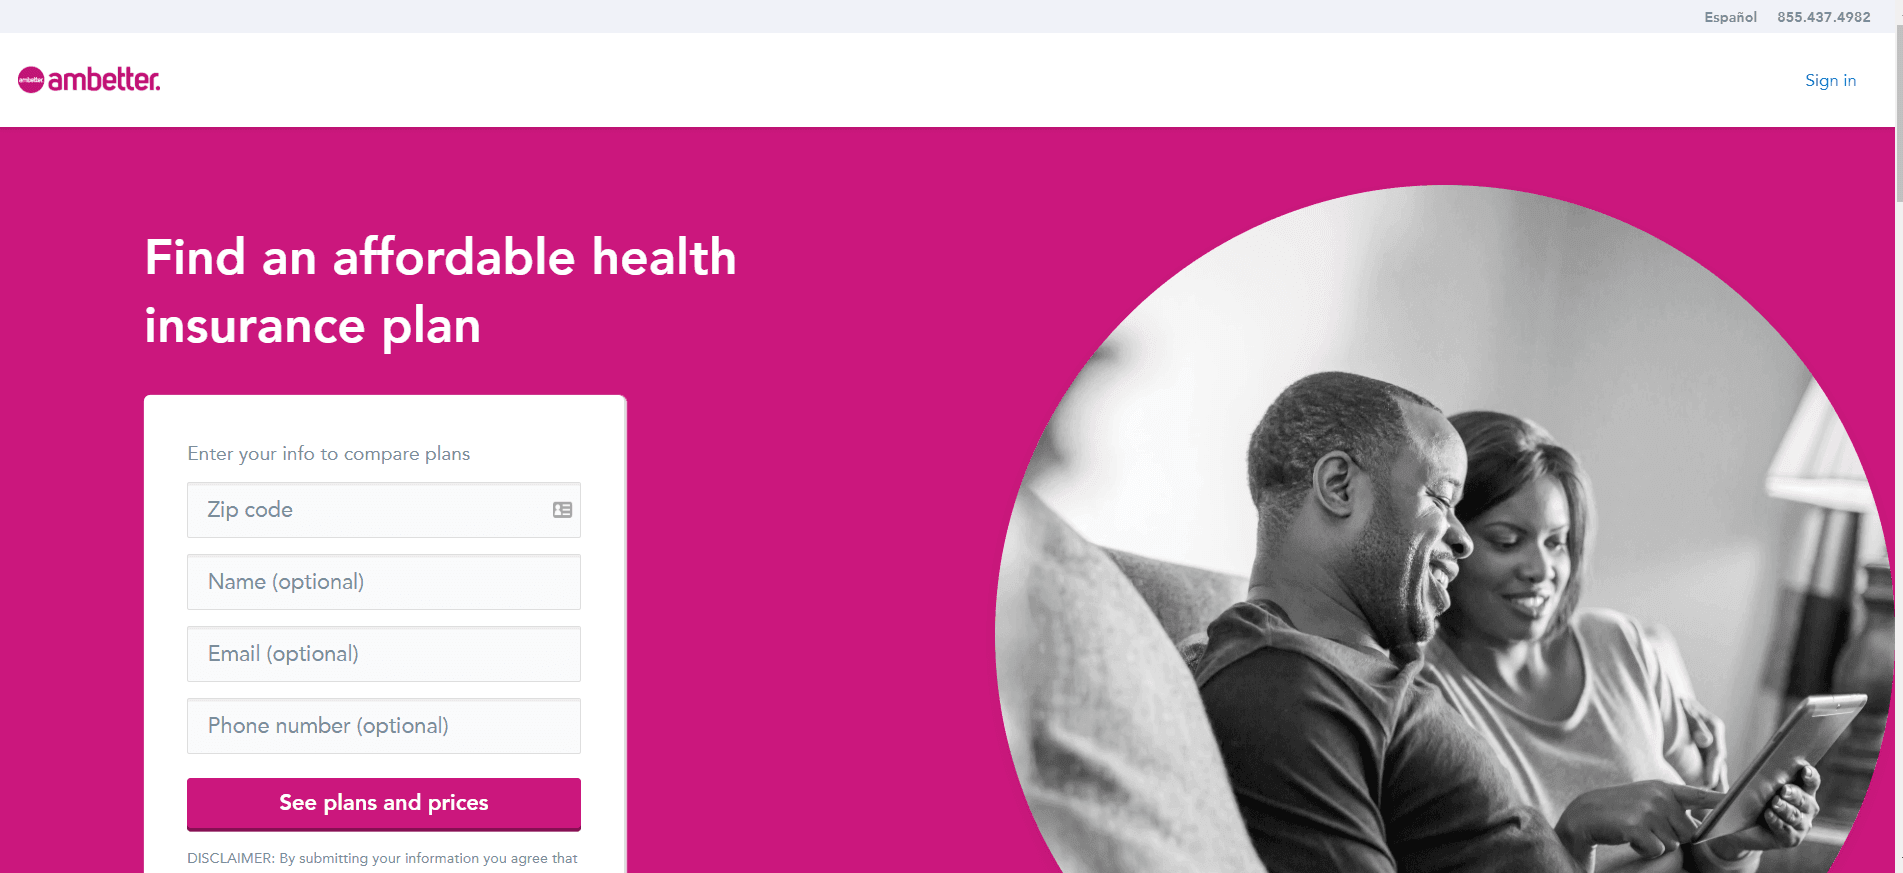 Ambetter insurance: My experience with Ambetter - front page